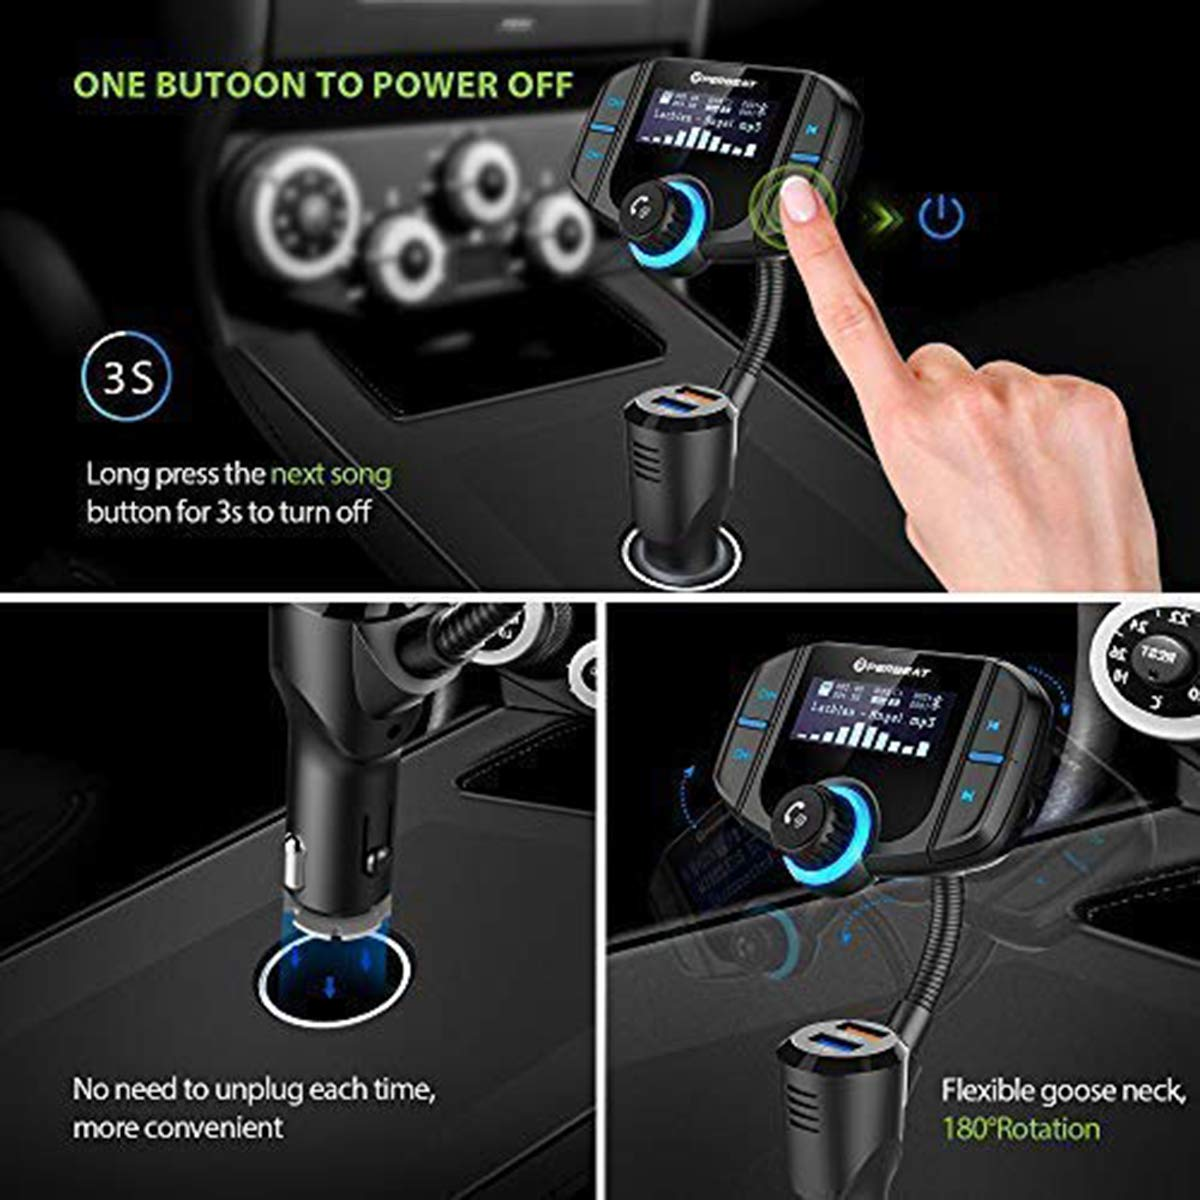 Perbeat Bluetooth FM Transmitter,Wireless In-Car Radio Stereo Adapter with QC3.0 USB Car Charger MP3 Player 1.7Inch Display Flexible Goose-Neck Micro SD Reader AUX In/Out for iPhone 7 iPad Samsung LG